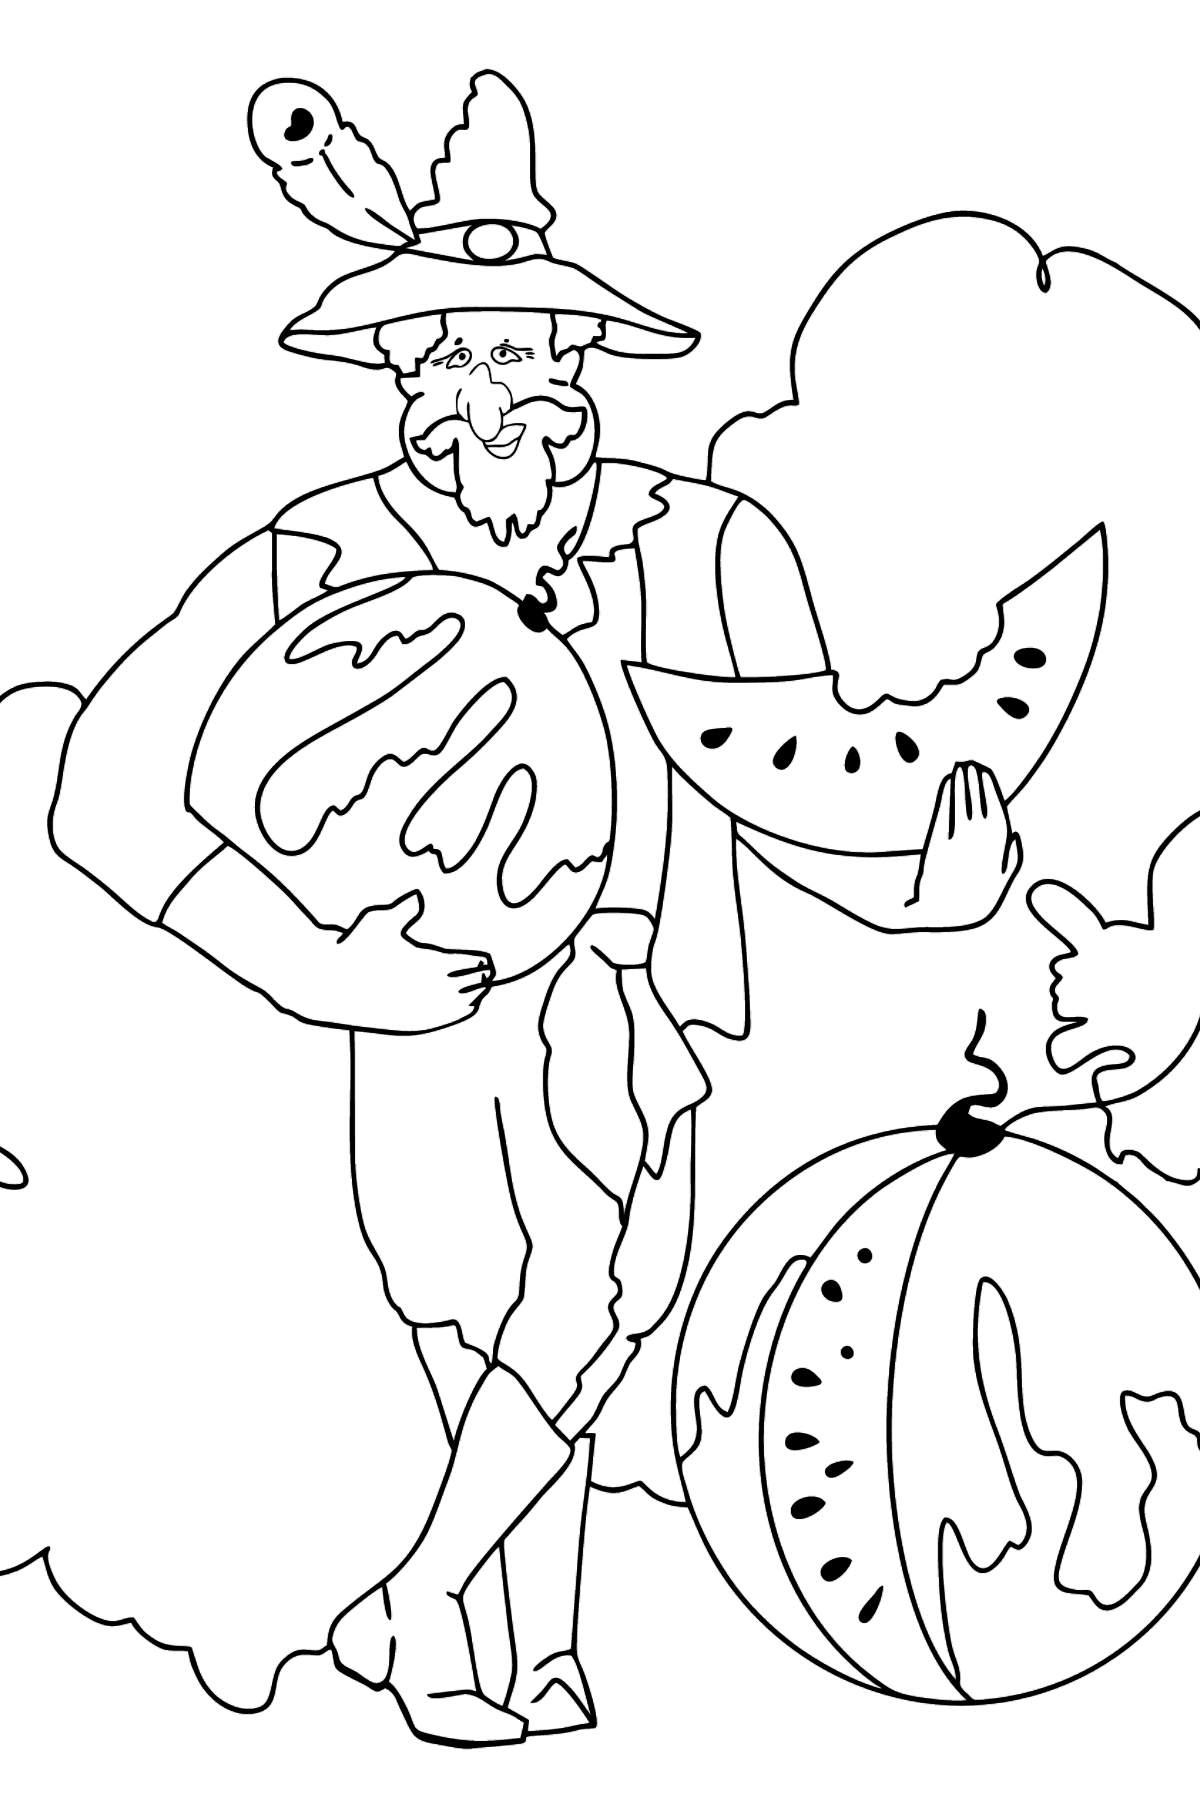 Coloring Page - A Pirate is Sharing a Ripe Watermelon - Coloring Pages for Kids